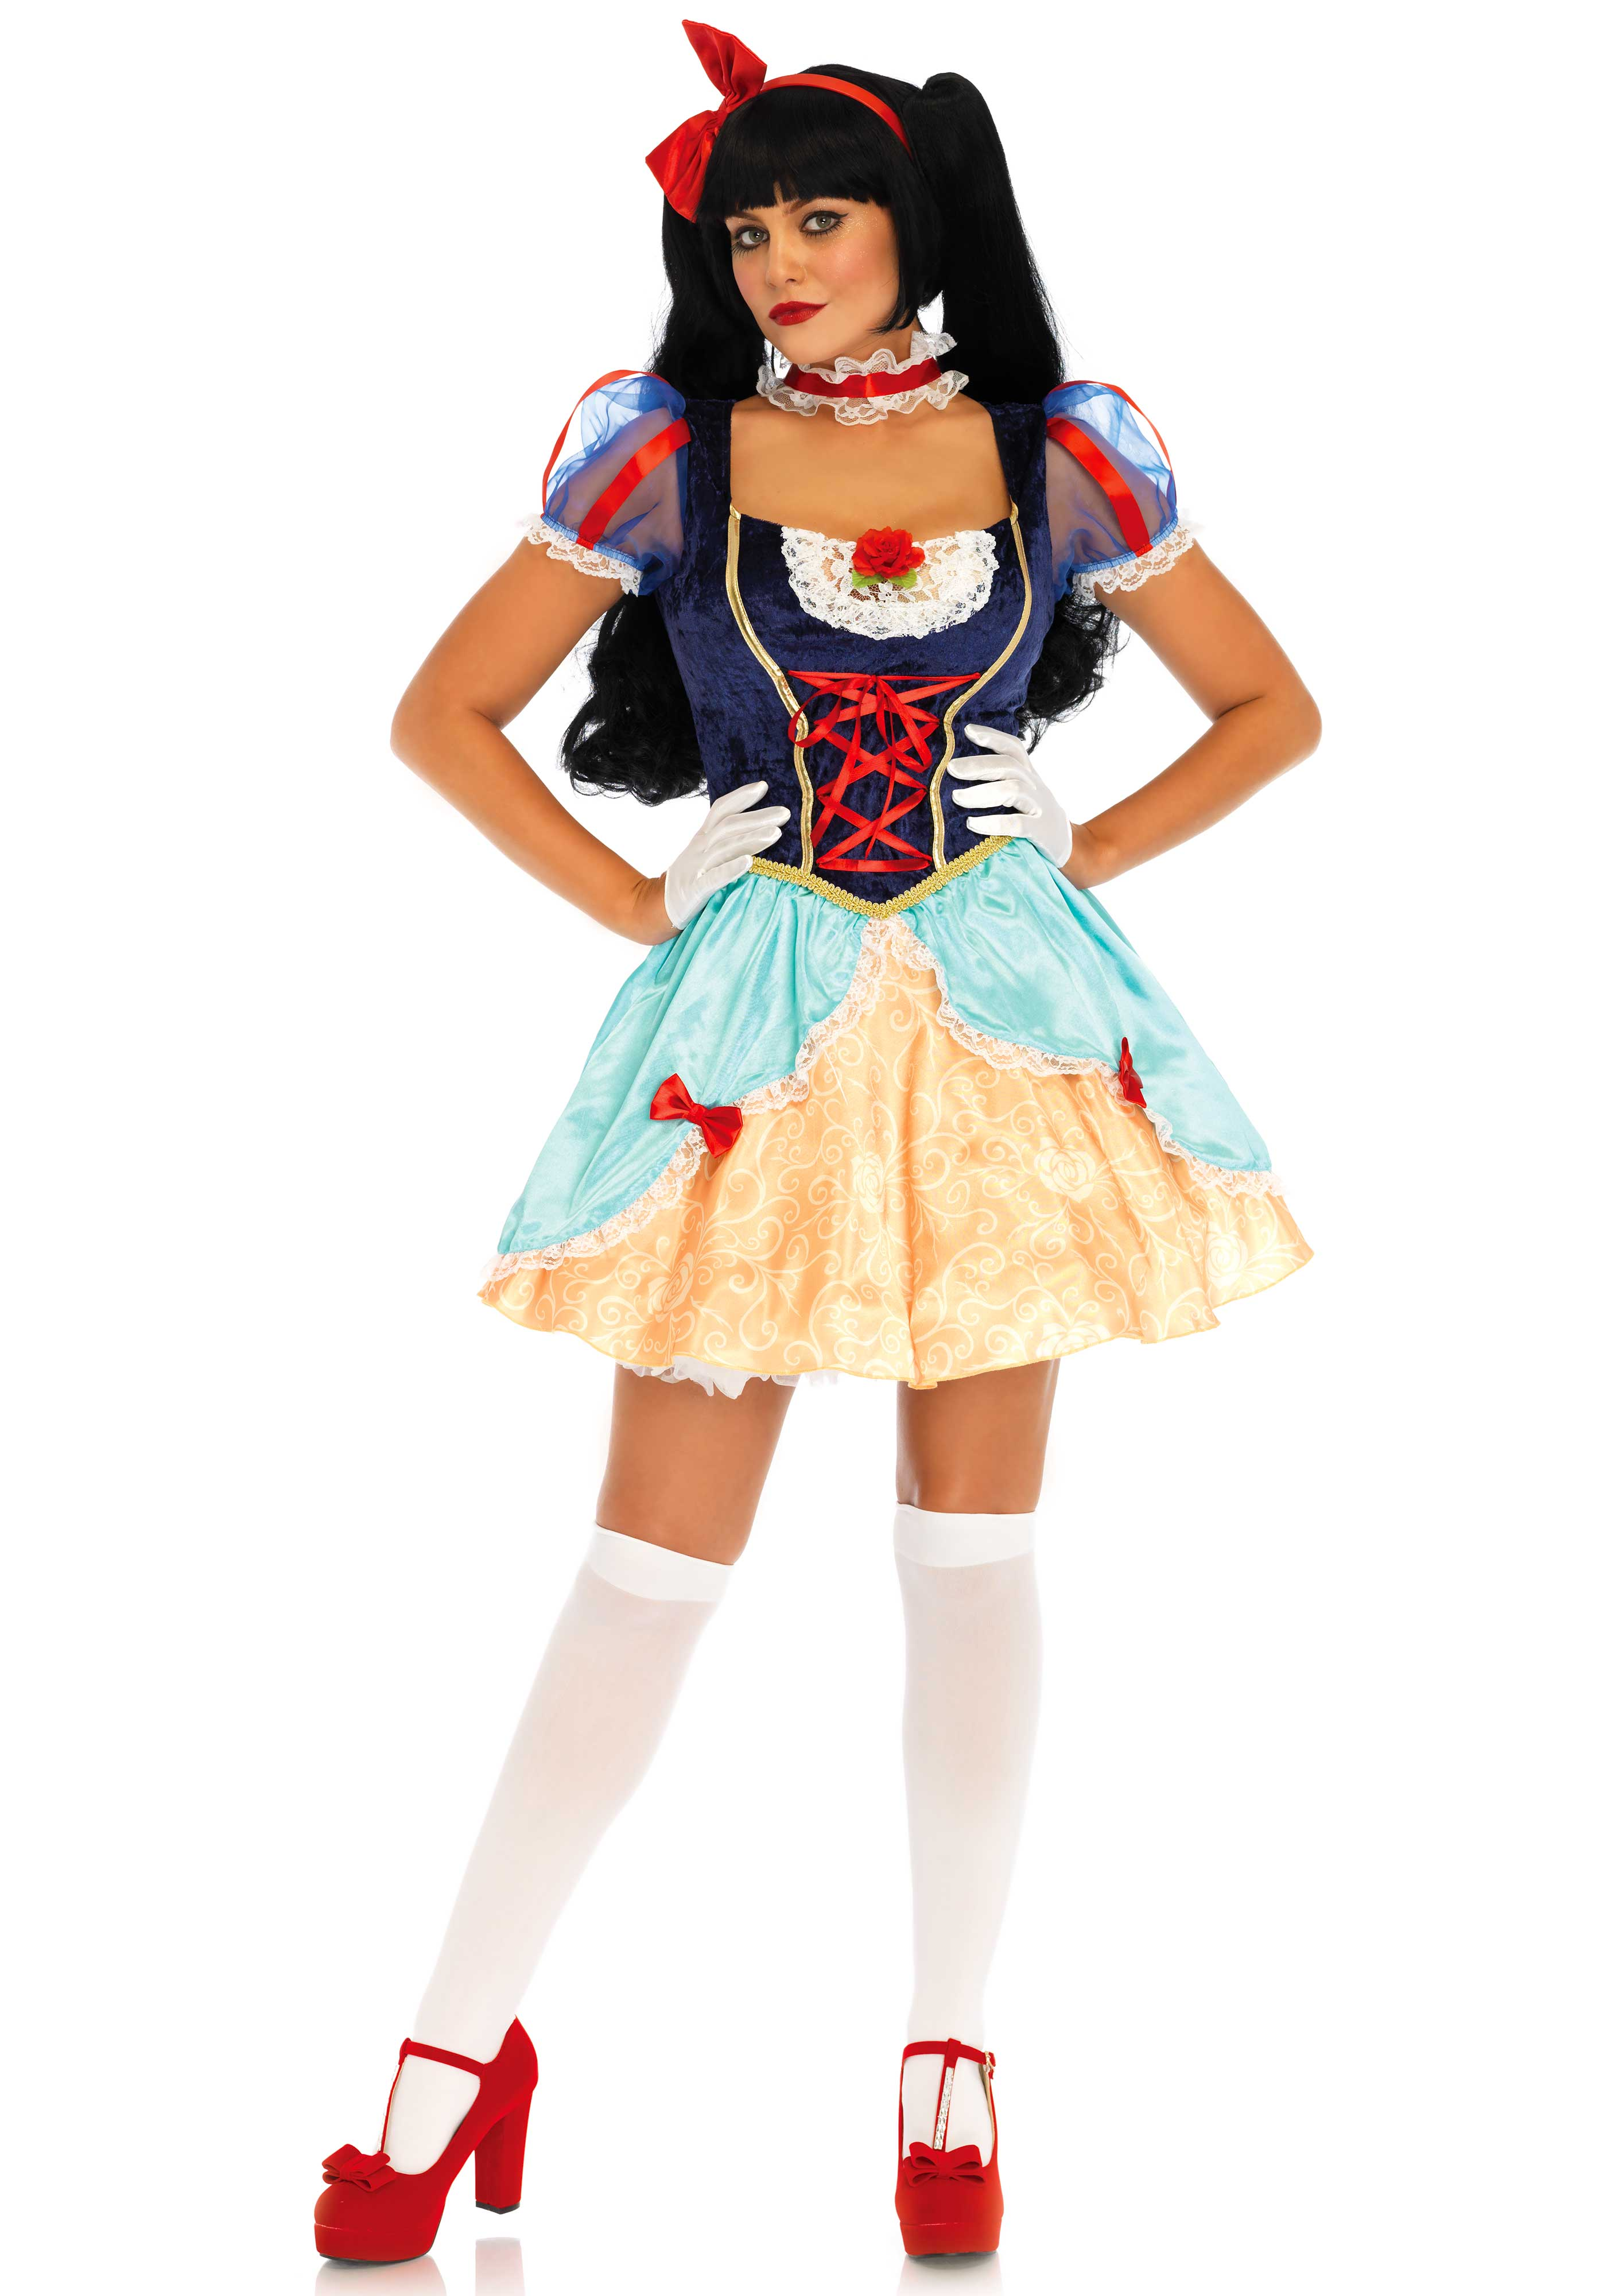 4 PC. Deluxe Lolita Snow White costume, includes velvet and satin layered dress with tule puff sleeves, detachable back bow, lace choker and bow headband.